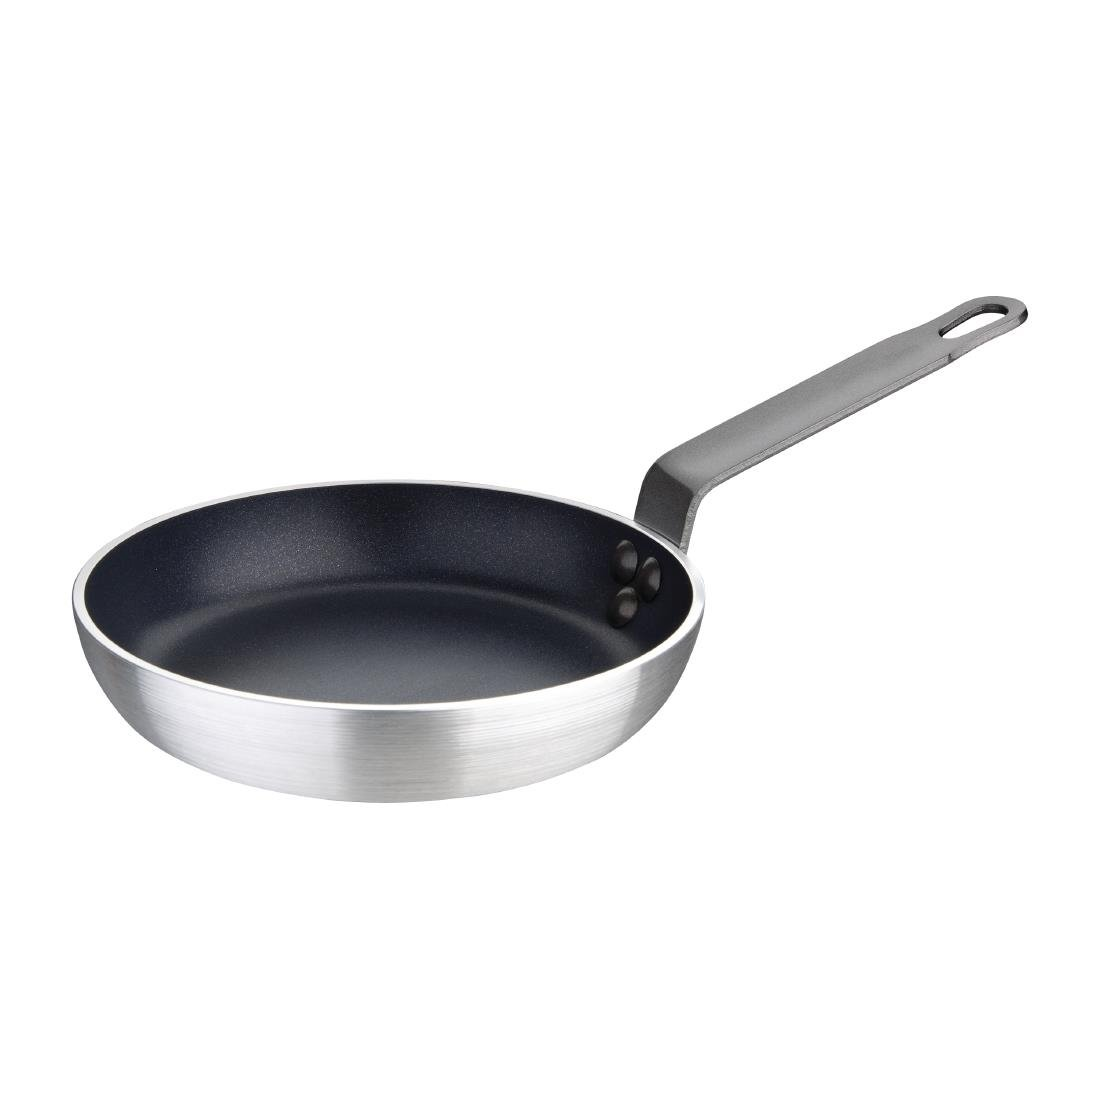 Frying Pan Frypan High Quality Aluminium CATERING QUALITY PROFESSIONAL LONG